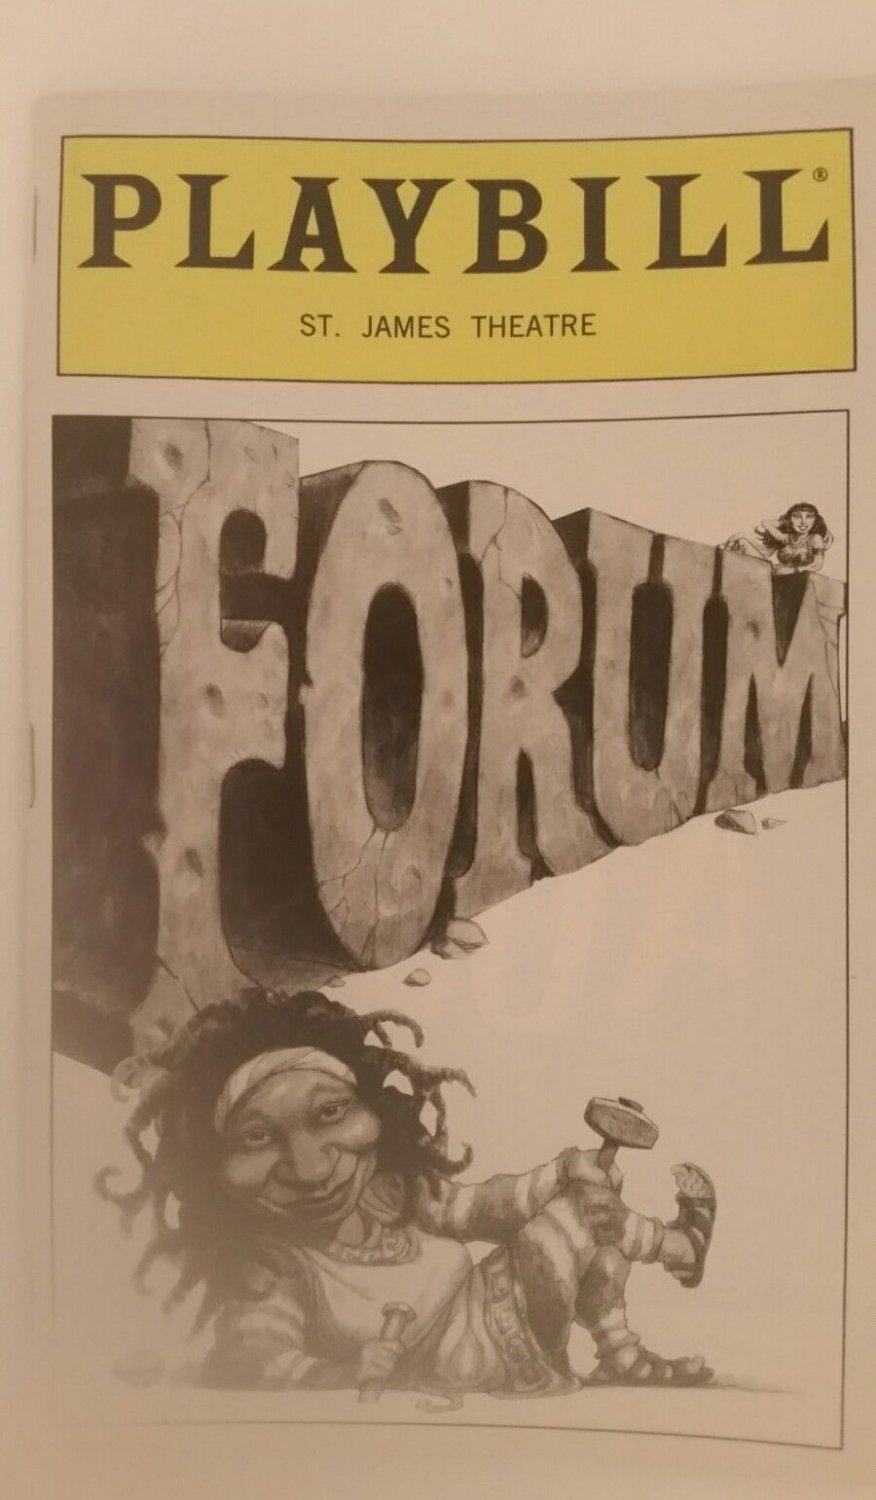 Forum Playbill from the St. James Theatre w Apr 11, 1997 Stub, BW cover